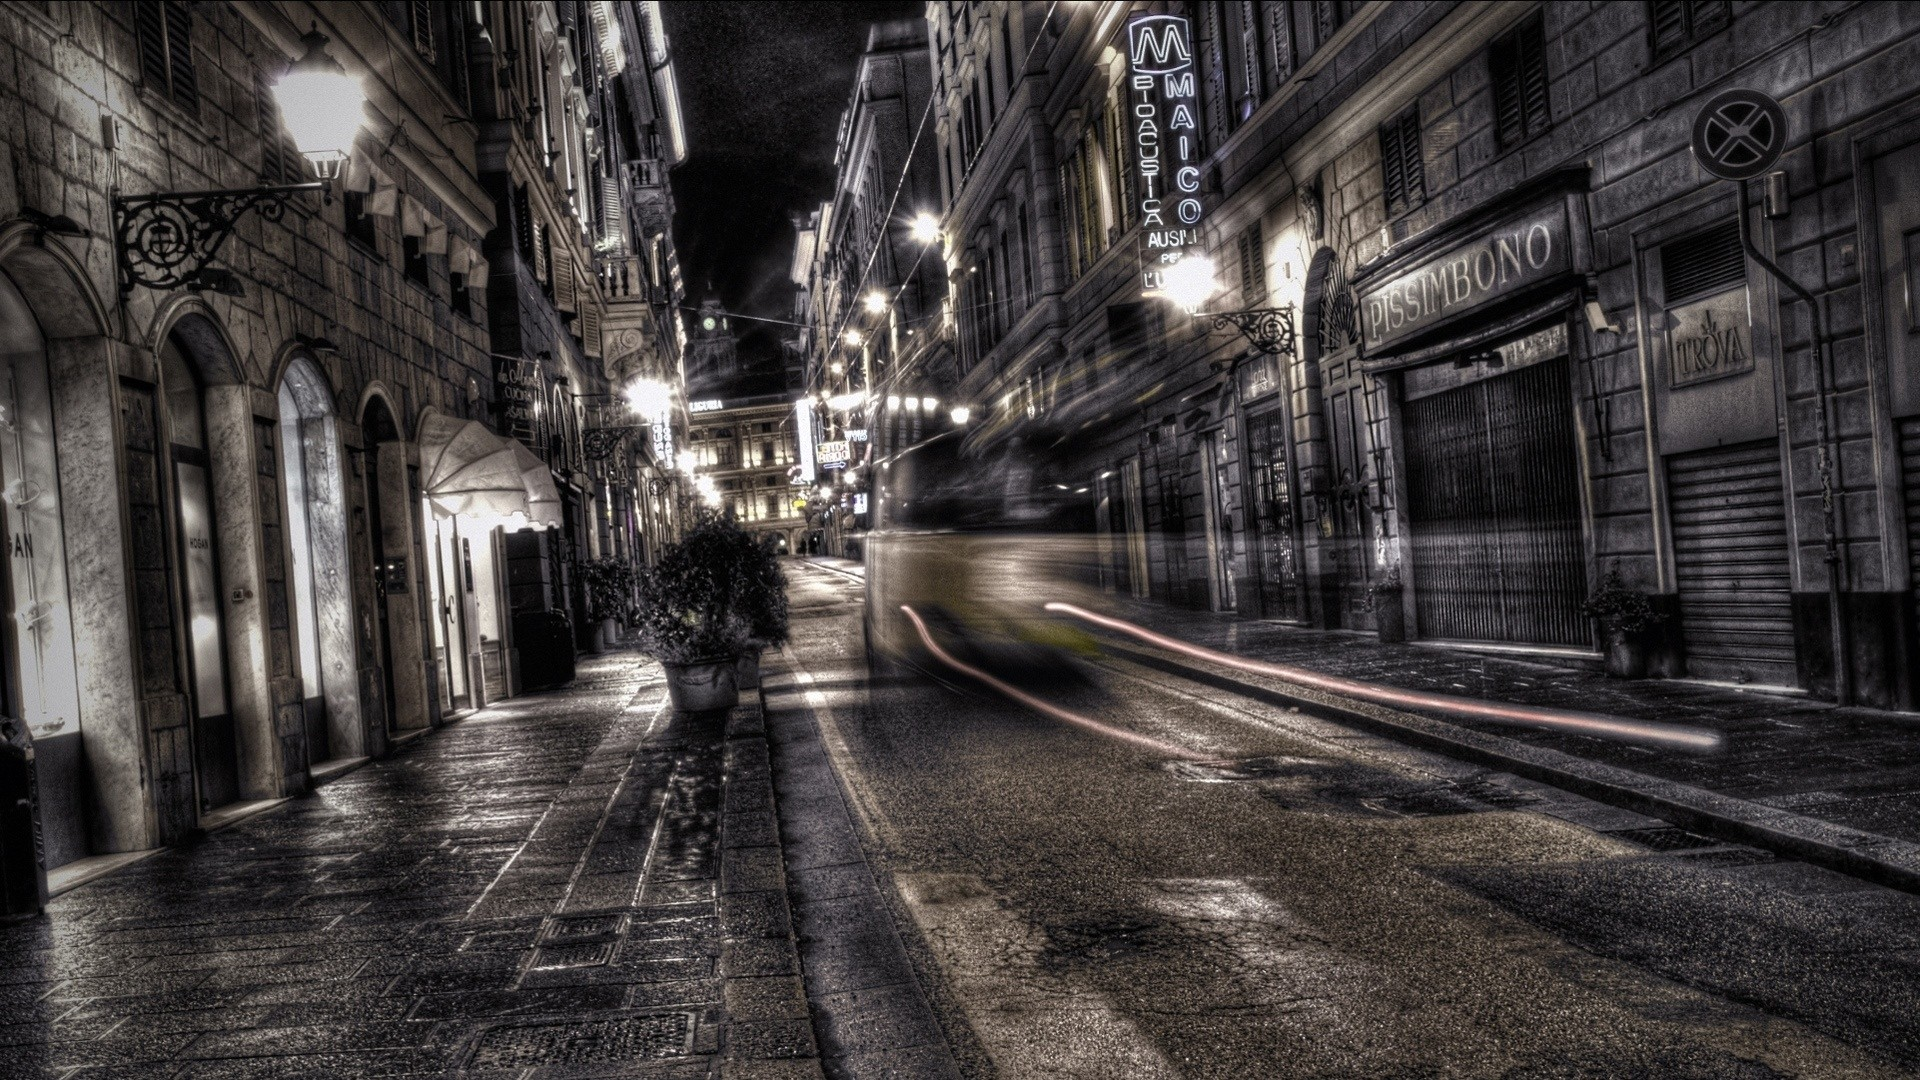 City Street Background 1 Download Free High Resolution Backgrounds